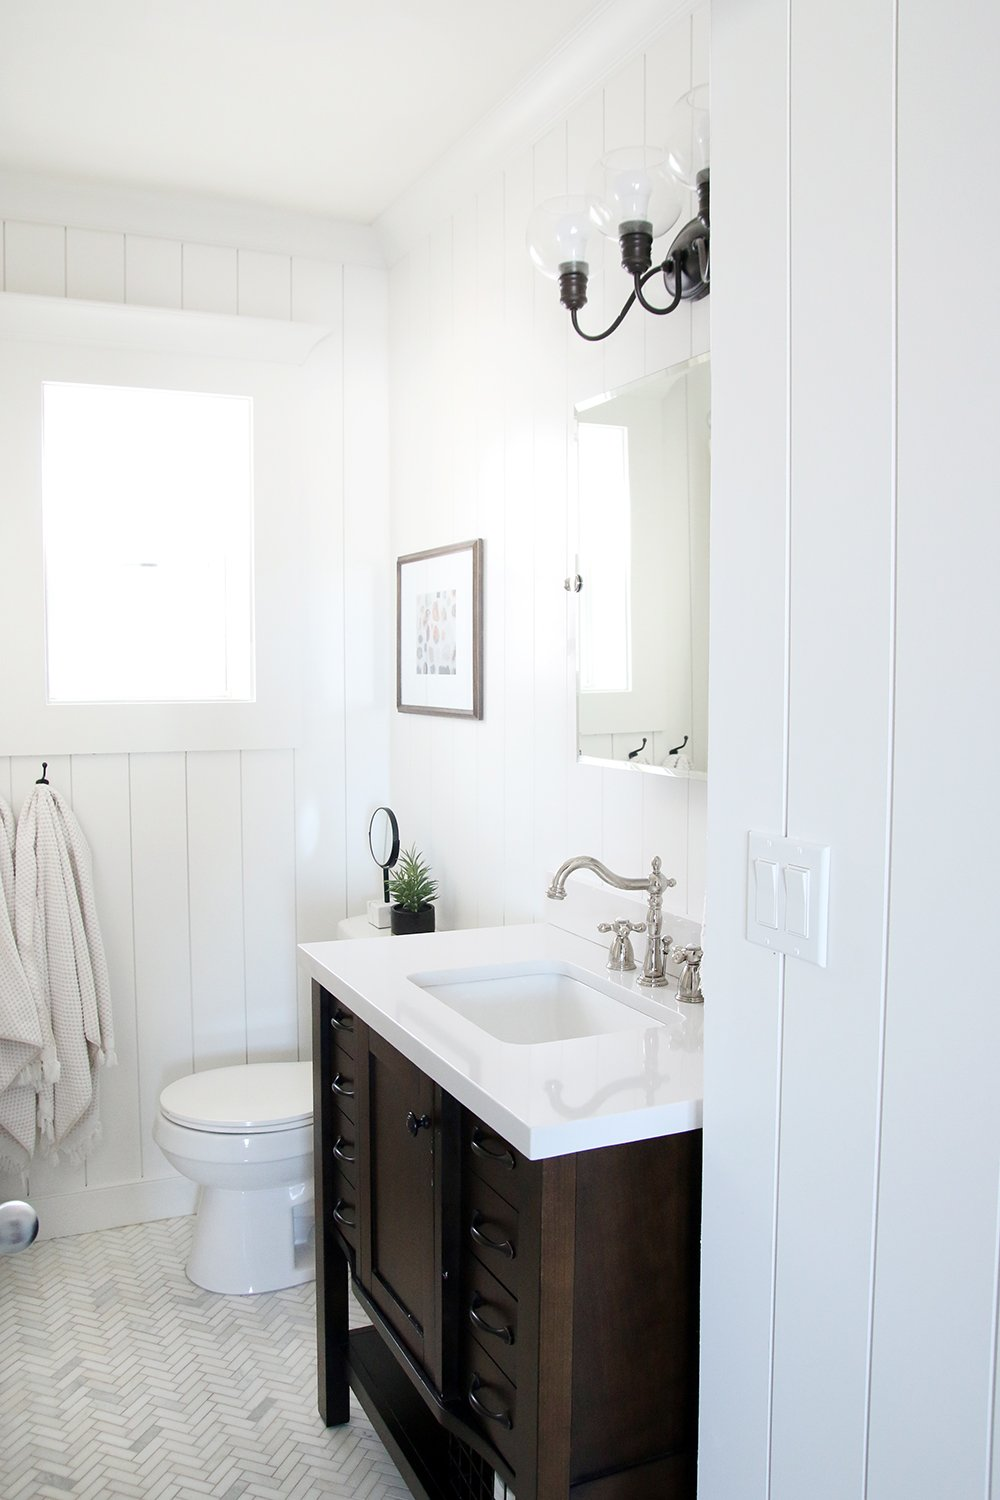 The Most DIY Friendly Bathroom Renovation We've Ever Done! - Chris Bathroom Designs By Allie on health by design, dentistry by design, cubicle by design, room by design, paint by design, home by design, bound by design, cabinetry by design, flooring by design, electrical by design, doors by design, living by design, entrance hall by design, security by design, lounge by design, mirror by design, chocolate by design, furniture by design, travel by design, outdoor by design,